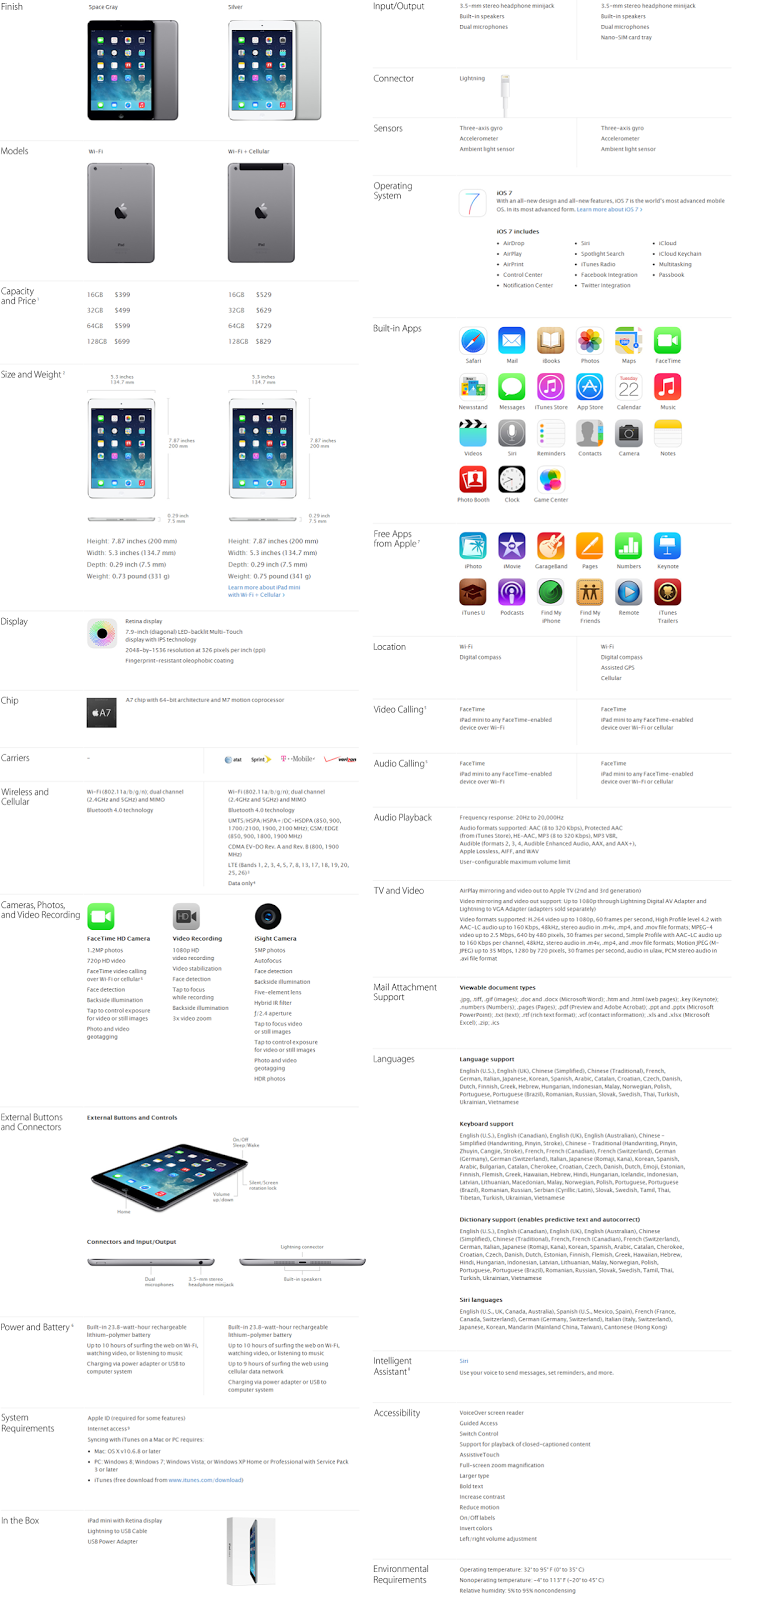 Apple iPad Mini 2 Retina Display Specs and Features